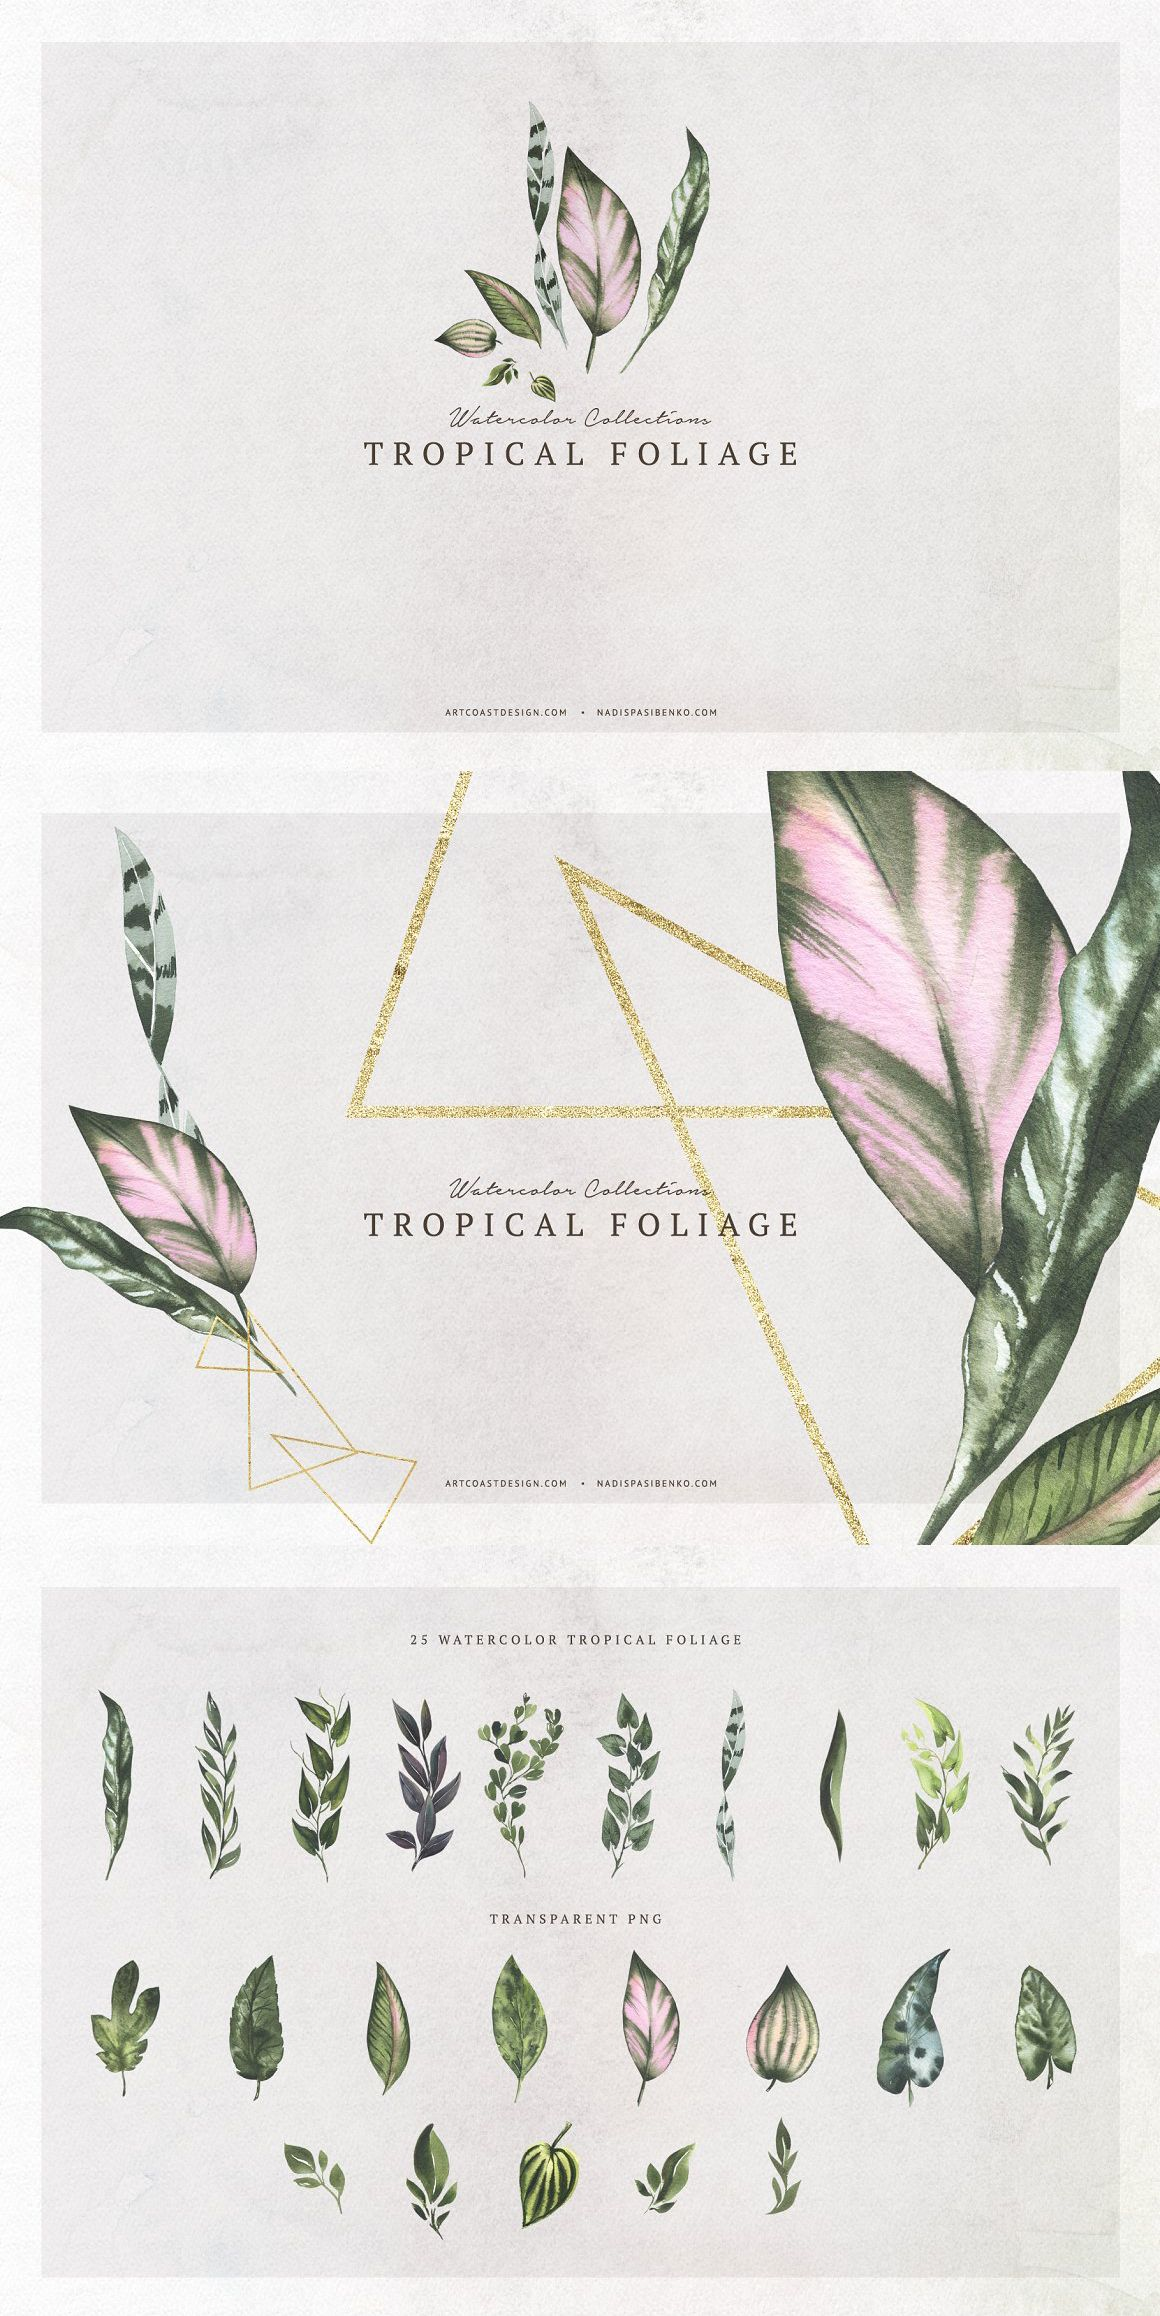 Watercolor Tropical Foliage Tropical Foliage Watercolor